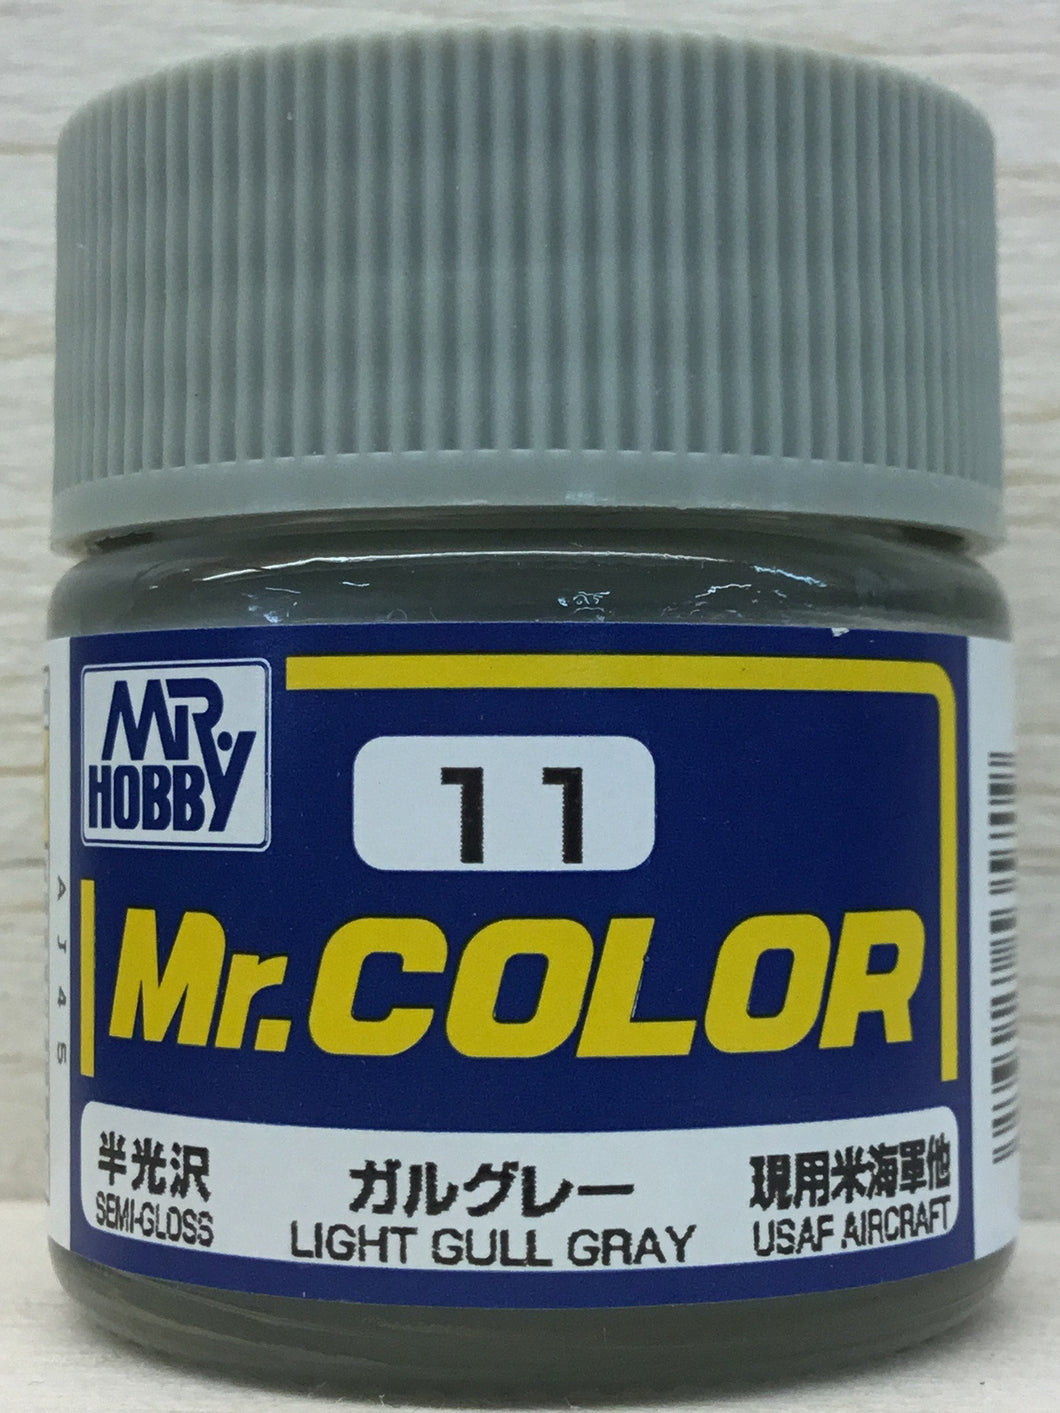 GUNZE MR COLOR C11 SEMI GLOSS LIGHT GULL GRAY